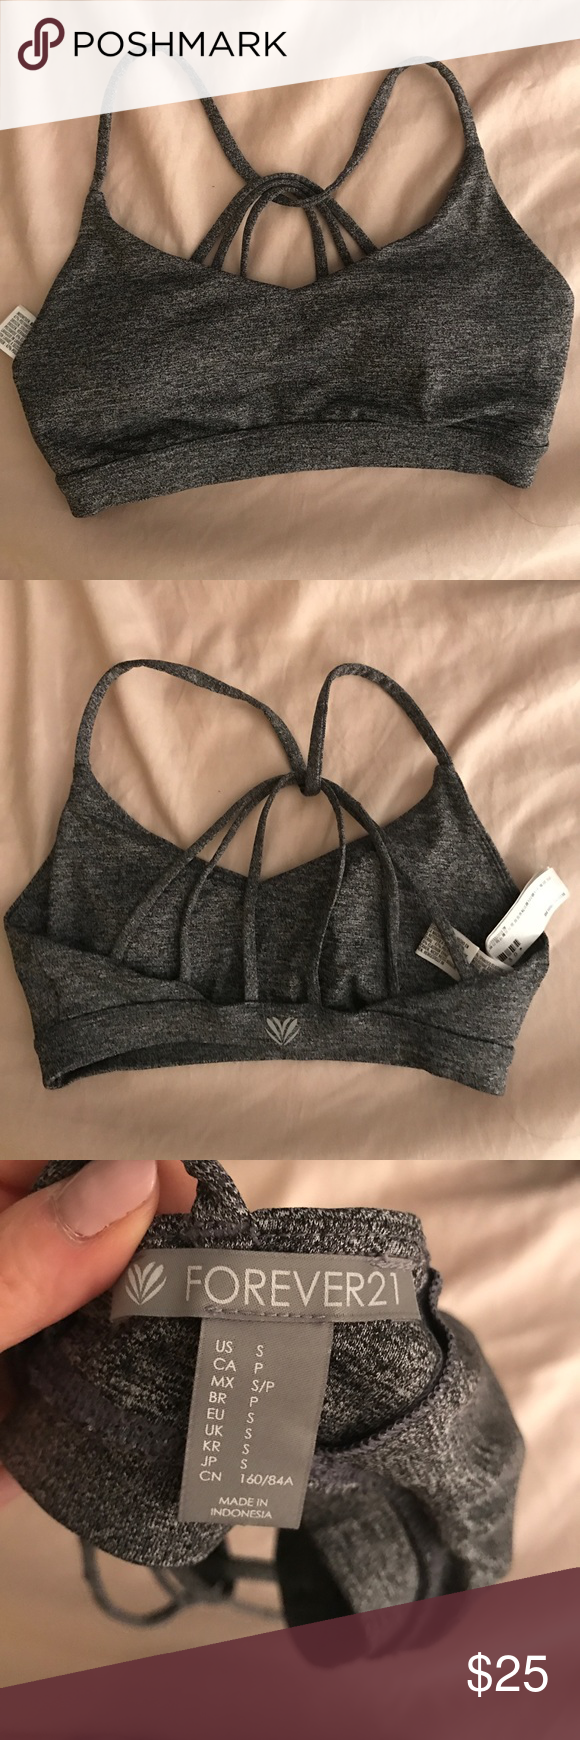 674d602aa9 Forever 21 Active Sports Bra Size  small  color  grey Forever 21 Intimates    Sleepwear Bras